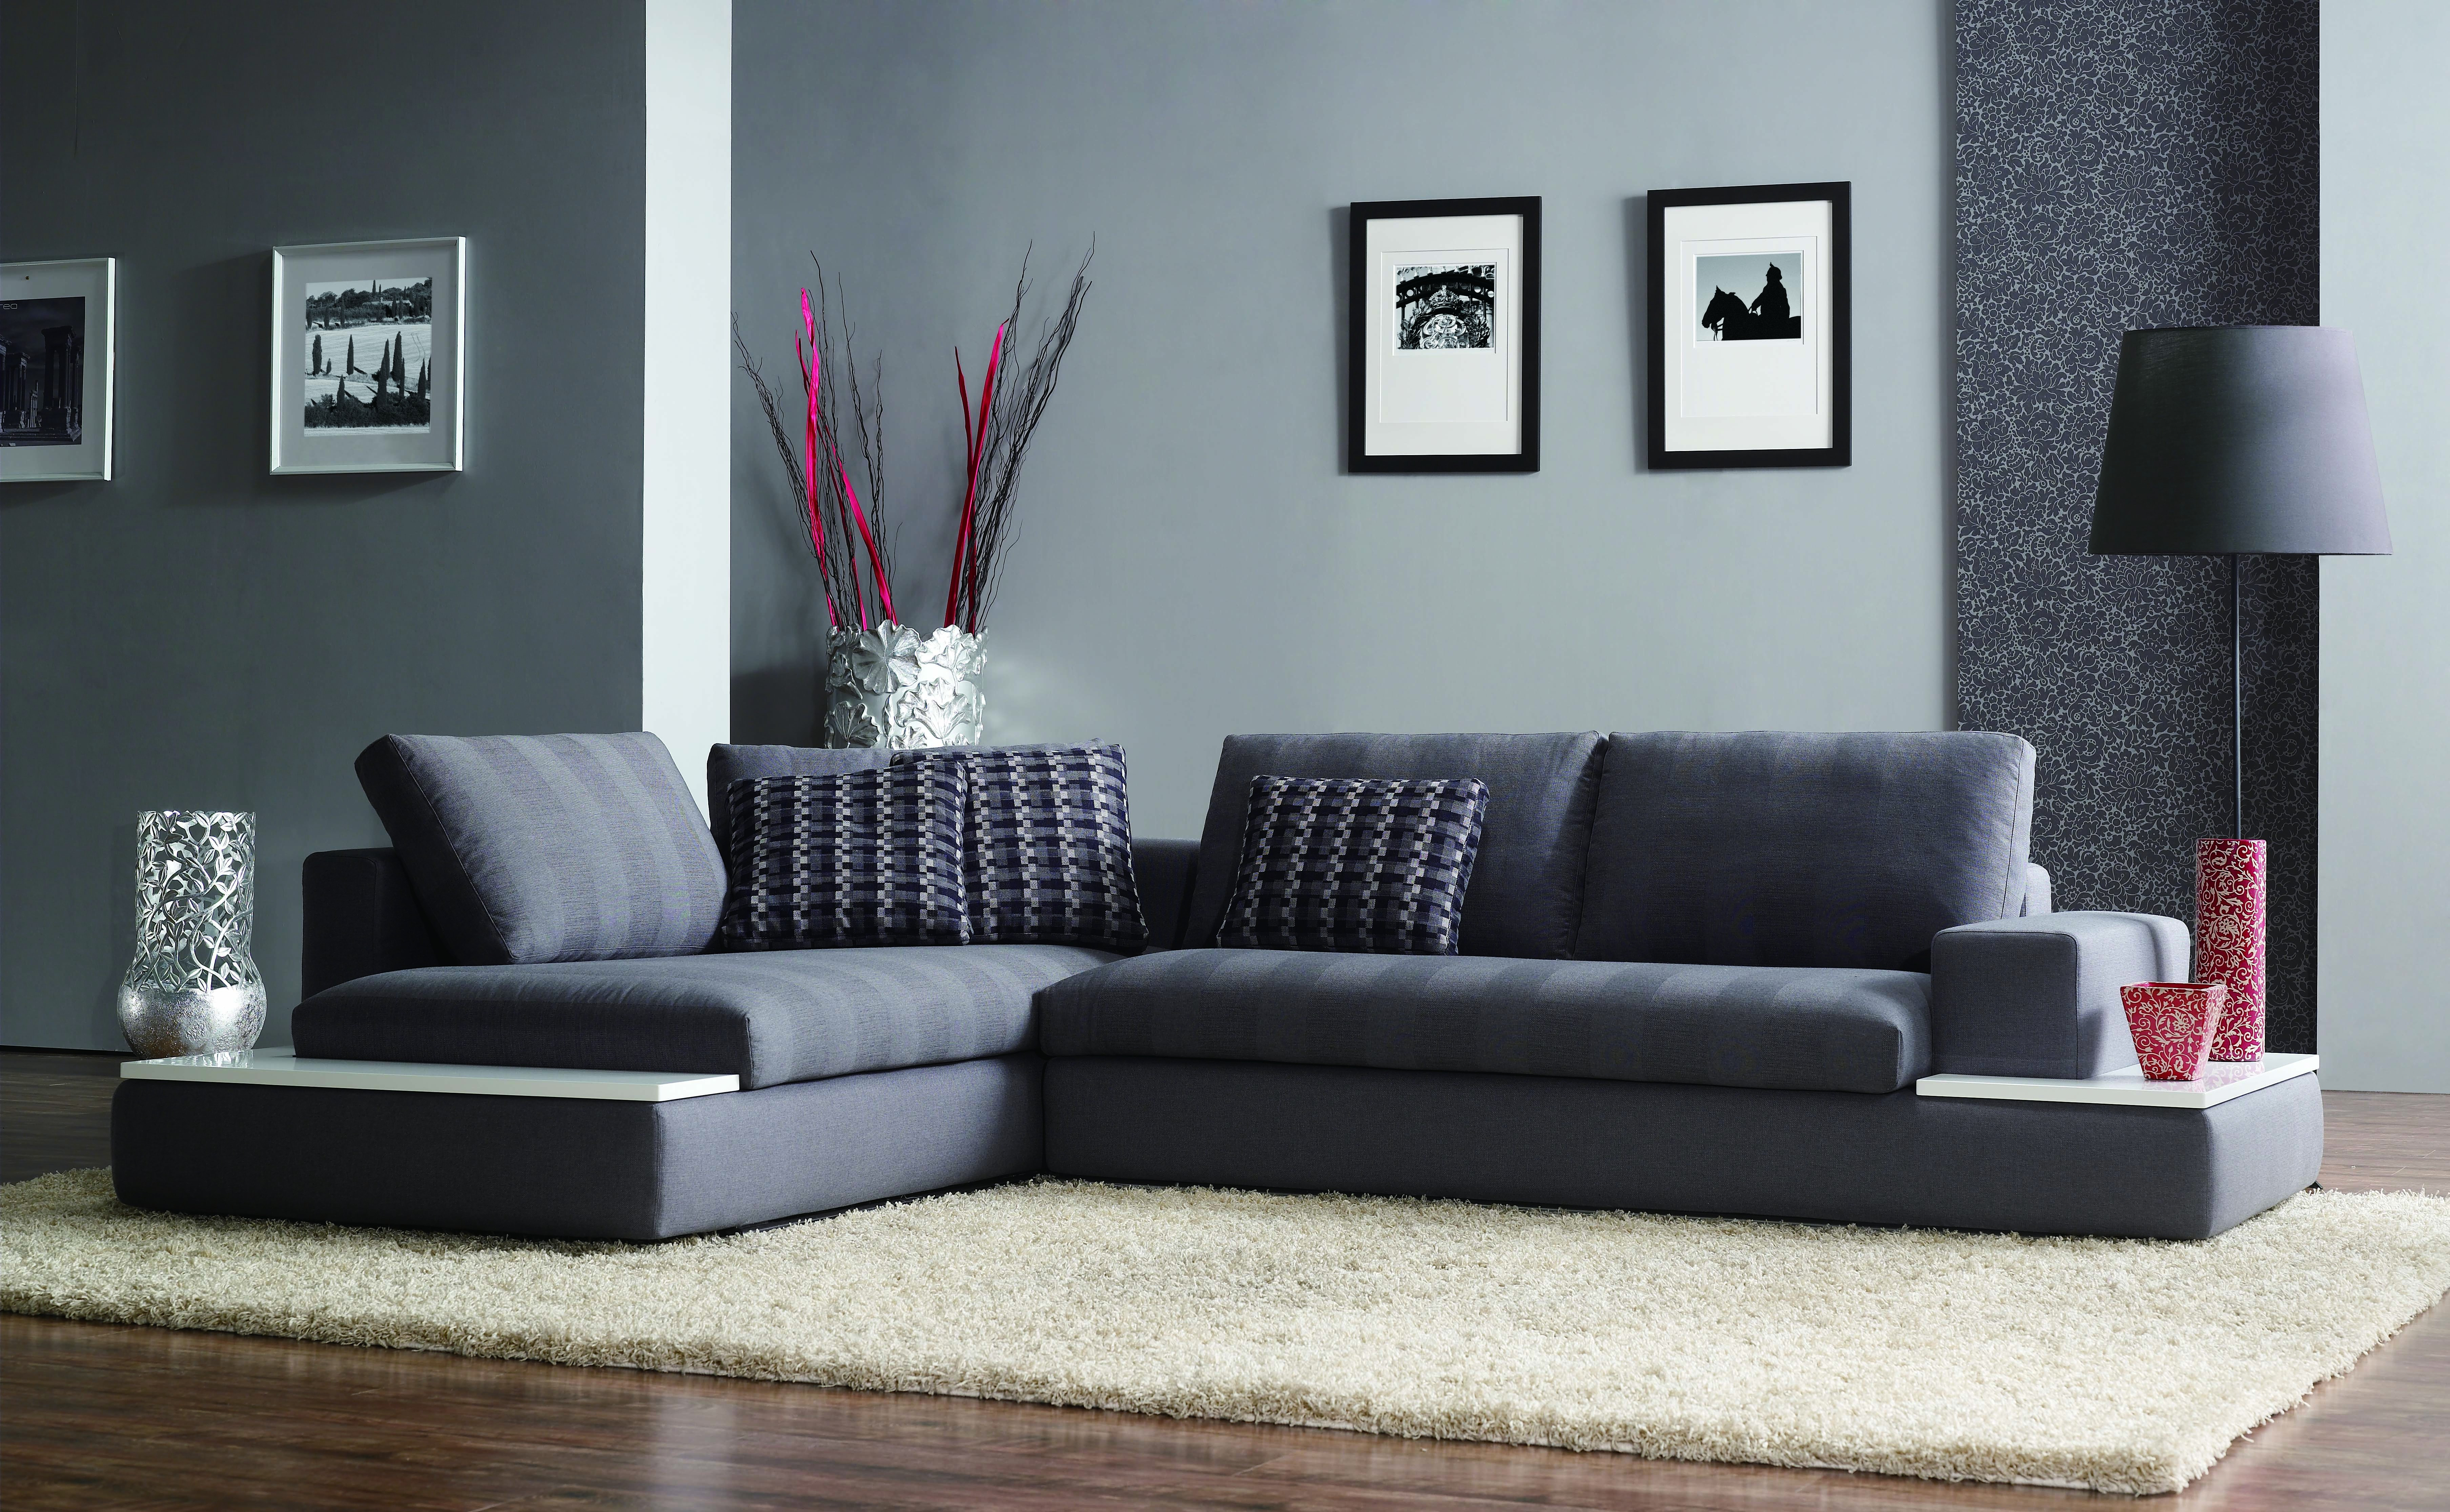 Best ideas about Living Room Candidate . Save or Pin The Living Room Candidate Now.